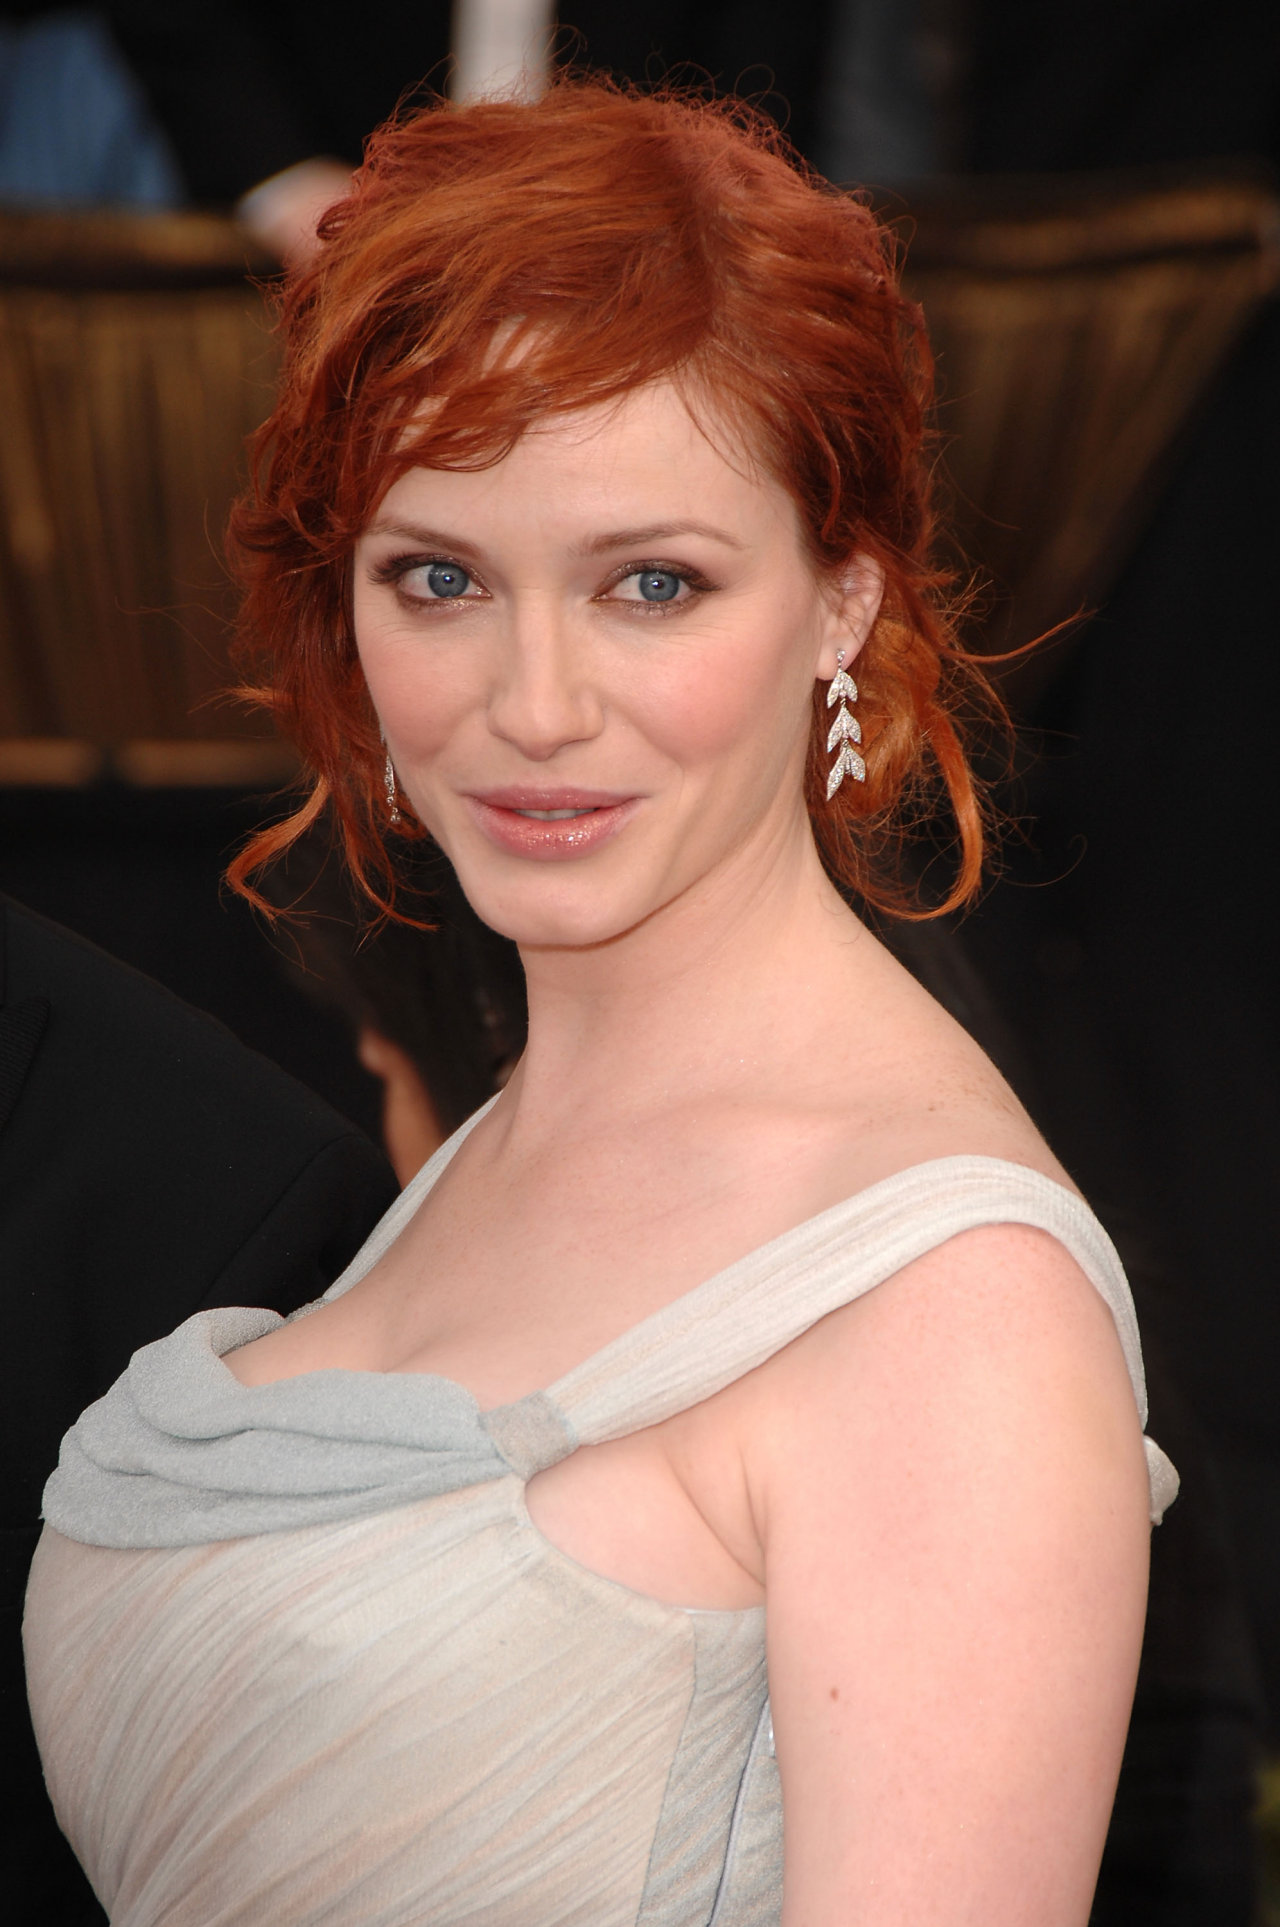 Christina Hendricks Nude Photos 89